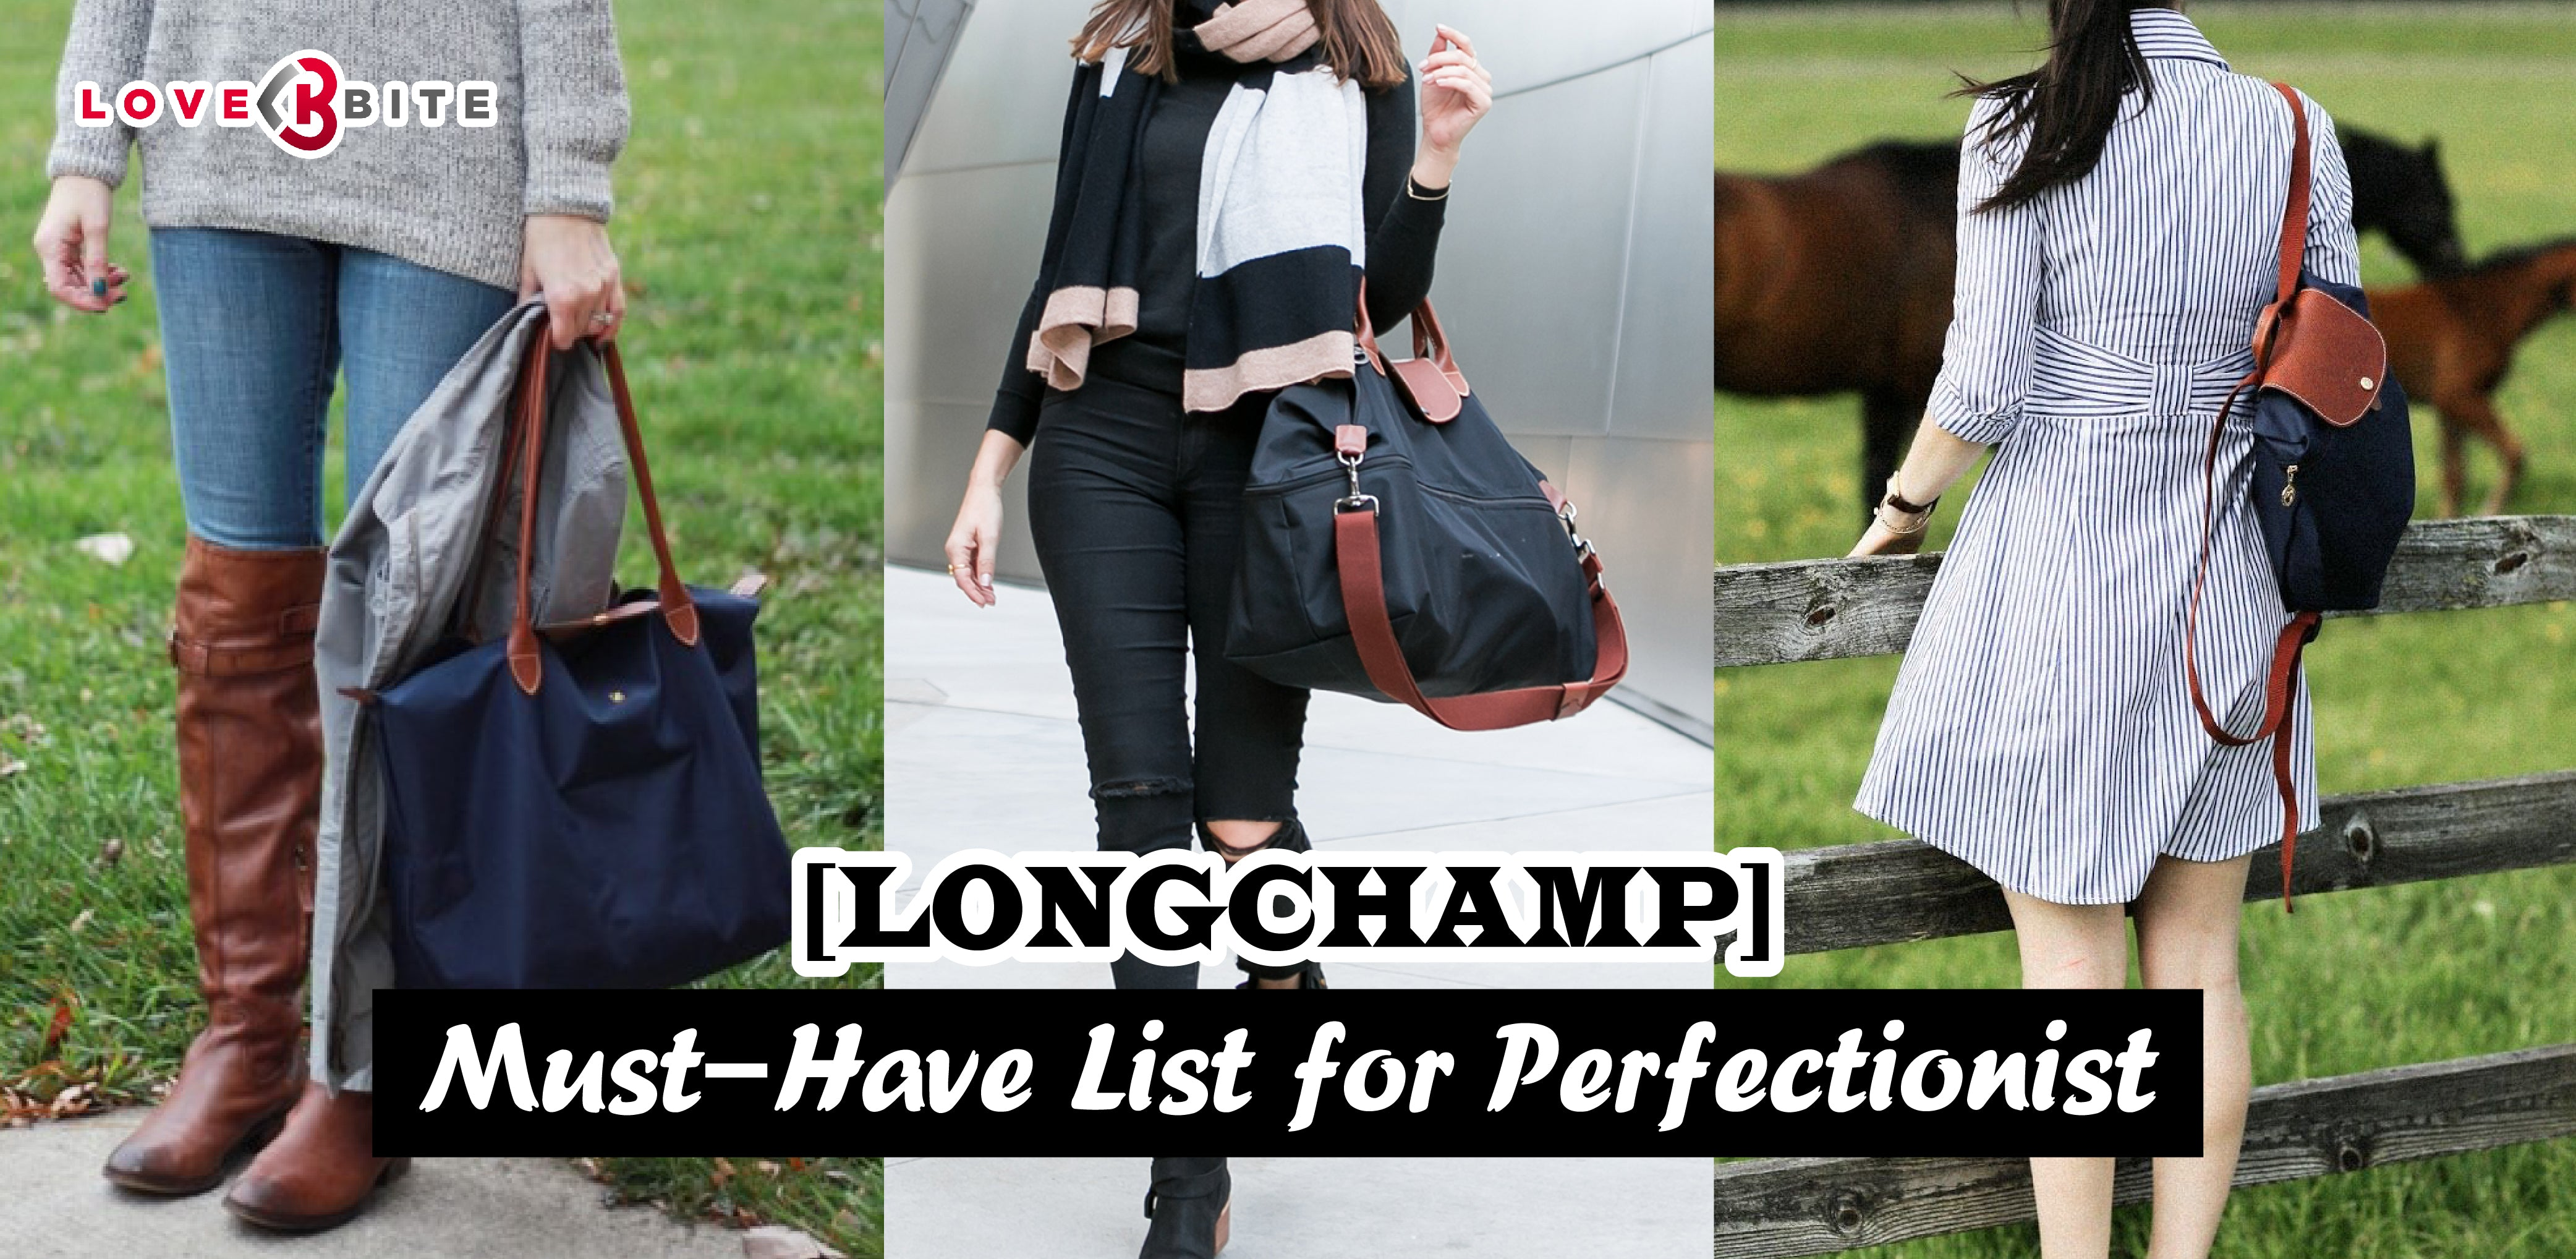 [LONGCHAMP] Must-Have List for Perfectionist